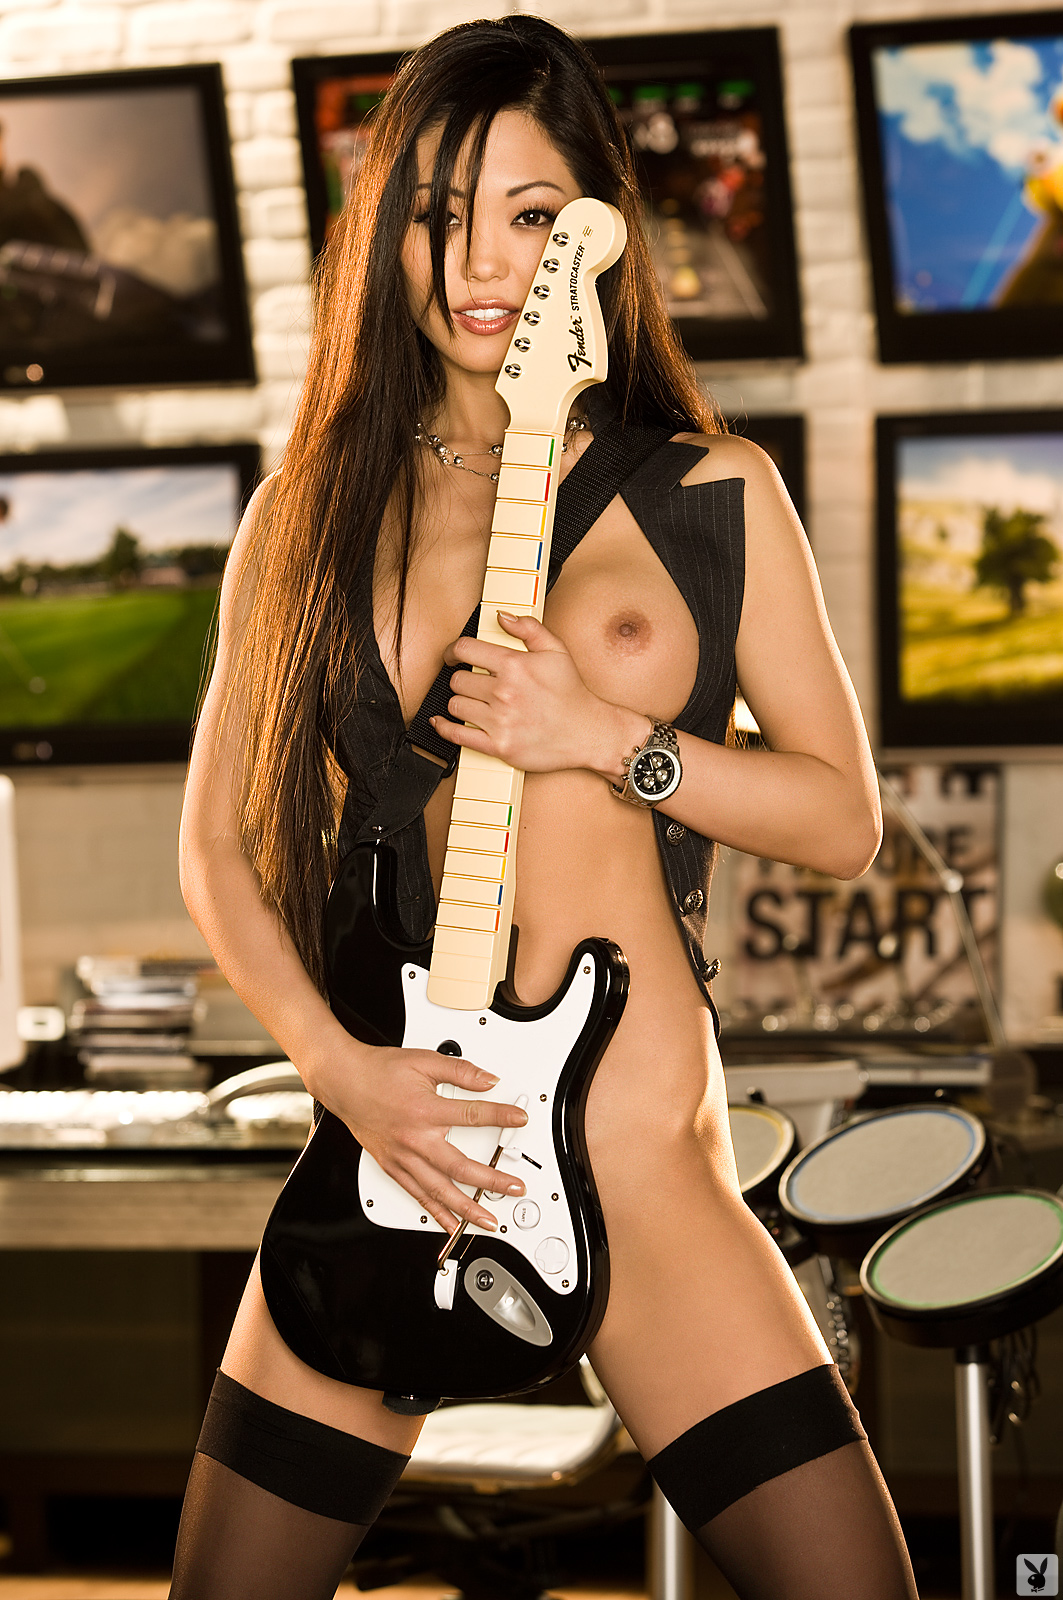 grace-kim-guitar-stockings-naked-asian-playboy-19